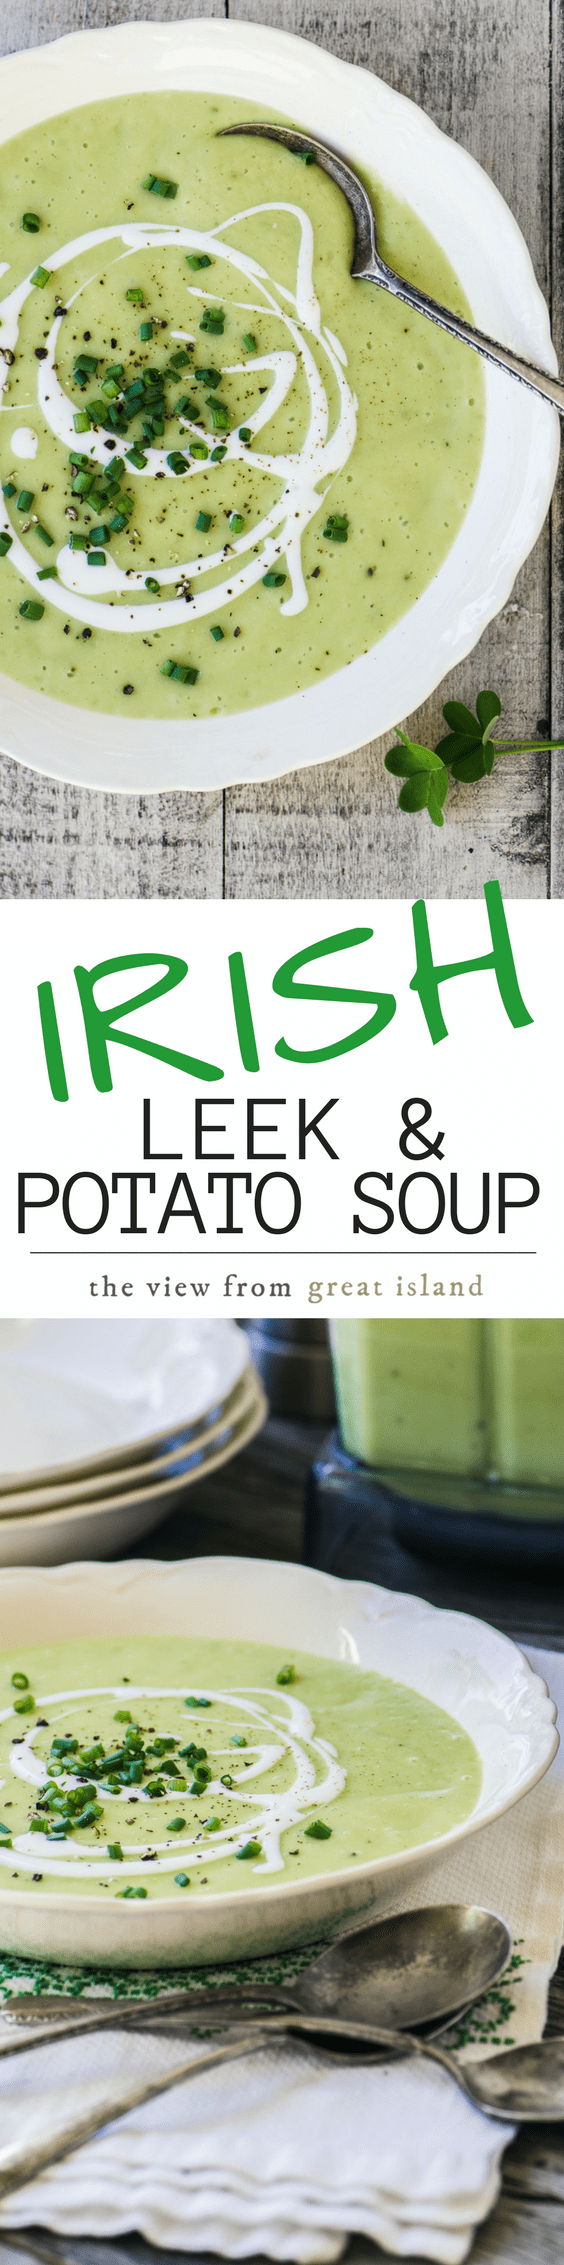 This is a simple and satisfying Leek and Potato Soup, straight from the Irish countryside. Serve it with a drizzle of soured cream, some fresh snipped chives, and a big chunk of soda bread. |CREAMED SOUP | LUNCH | ST. PATRICK'S DAY | IRISH RECIPES